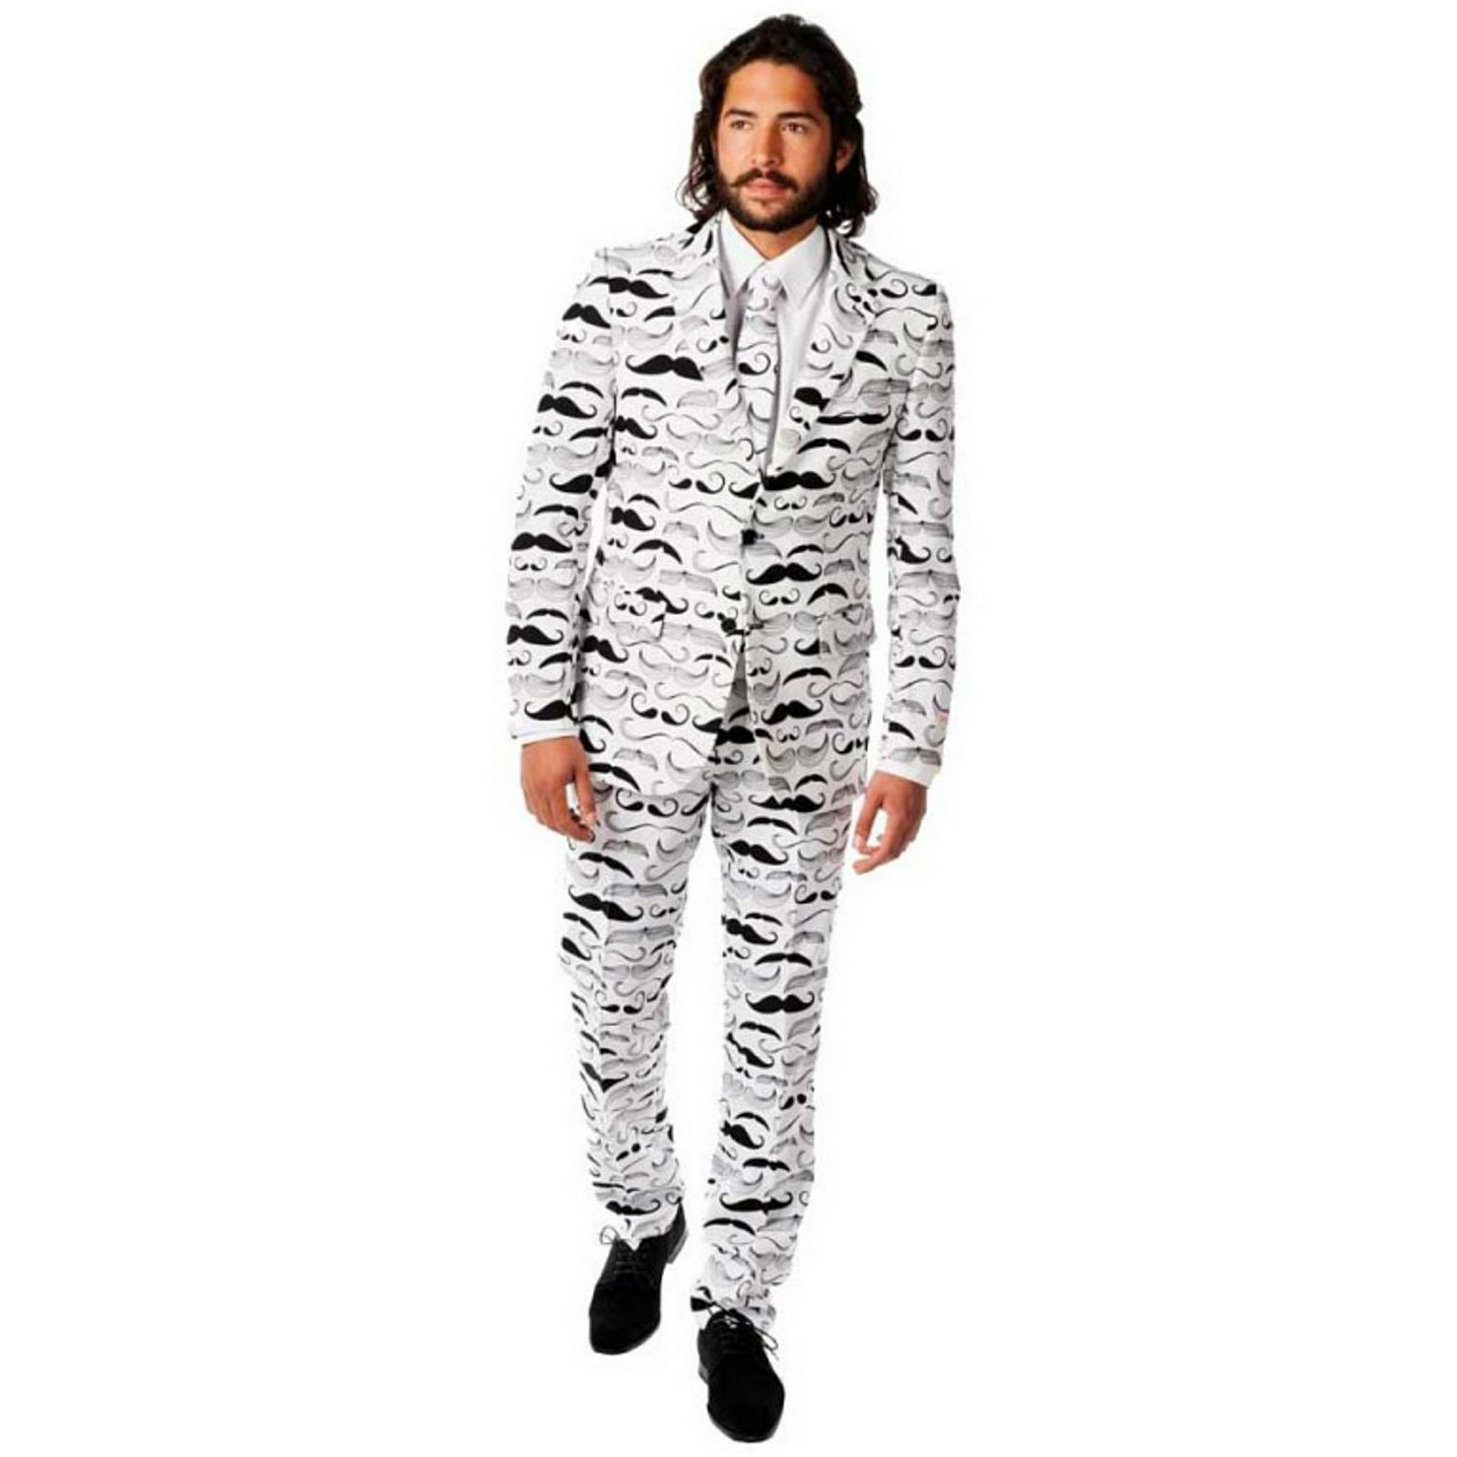 opposuits-mens-tashtastic-party-costume-suit-halloween-suits